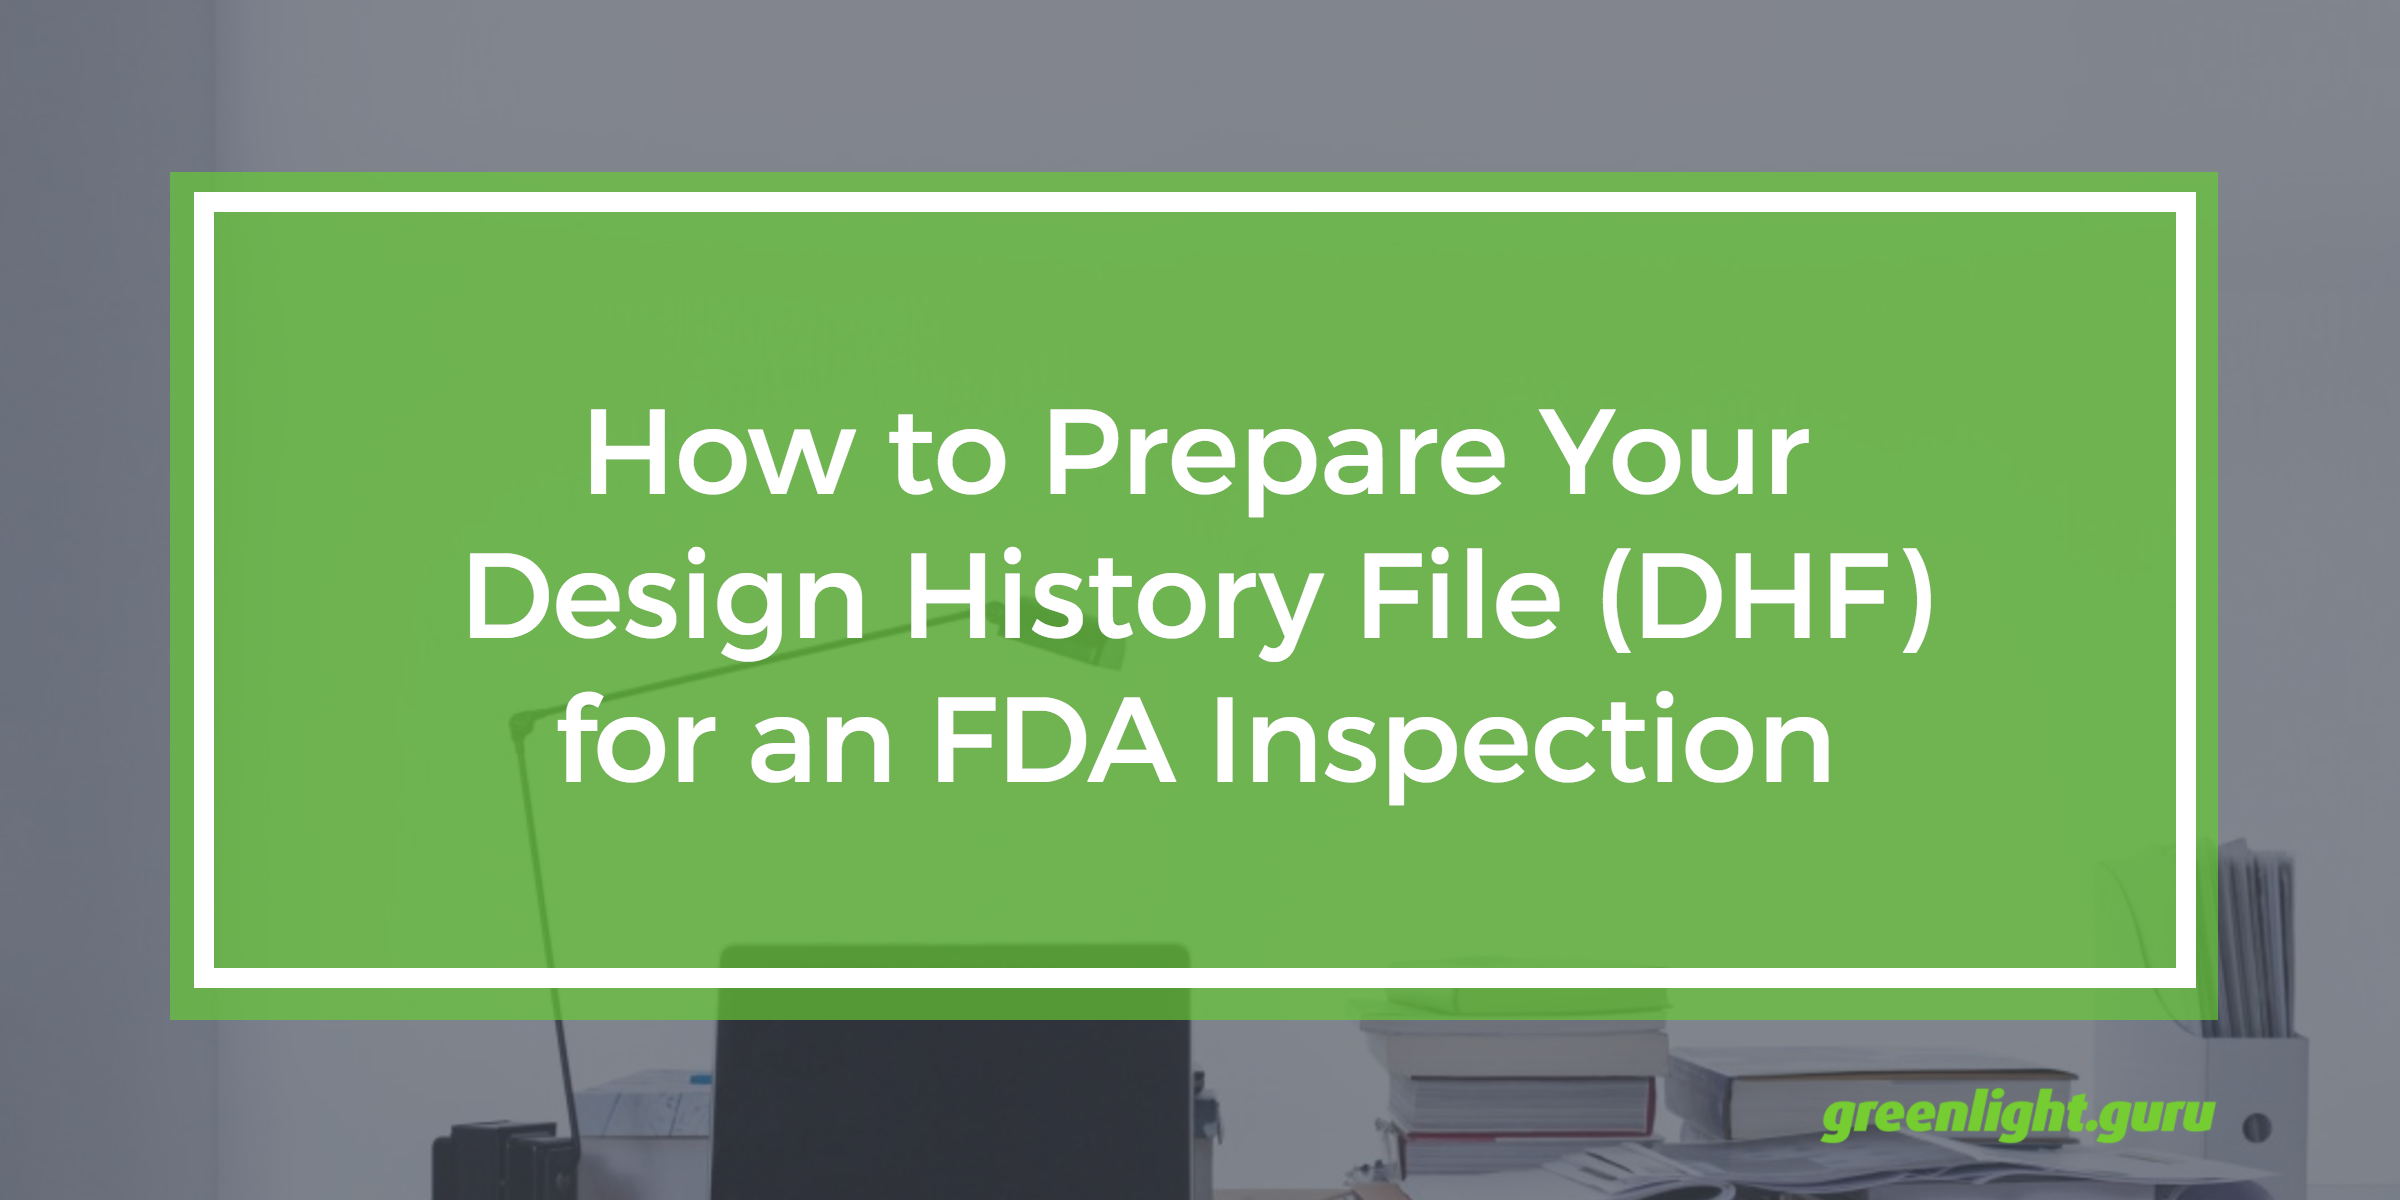 How to Prepare Your Design History File (DHF) for an FDA Inspection - Featured Image